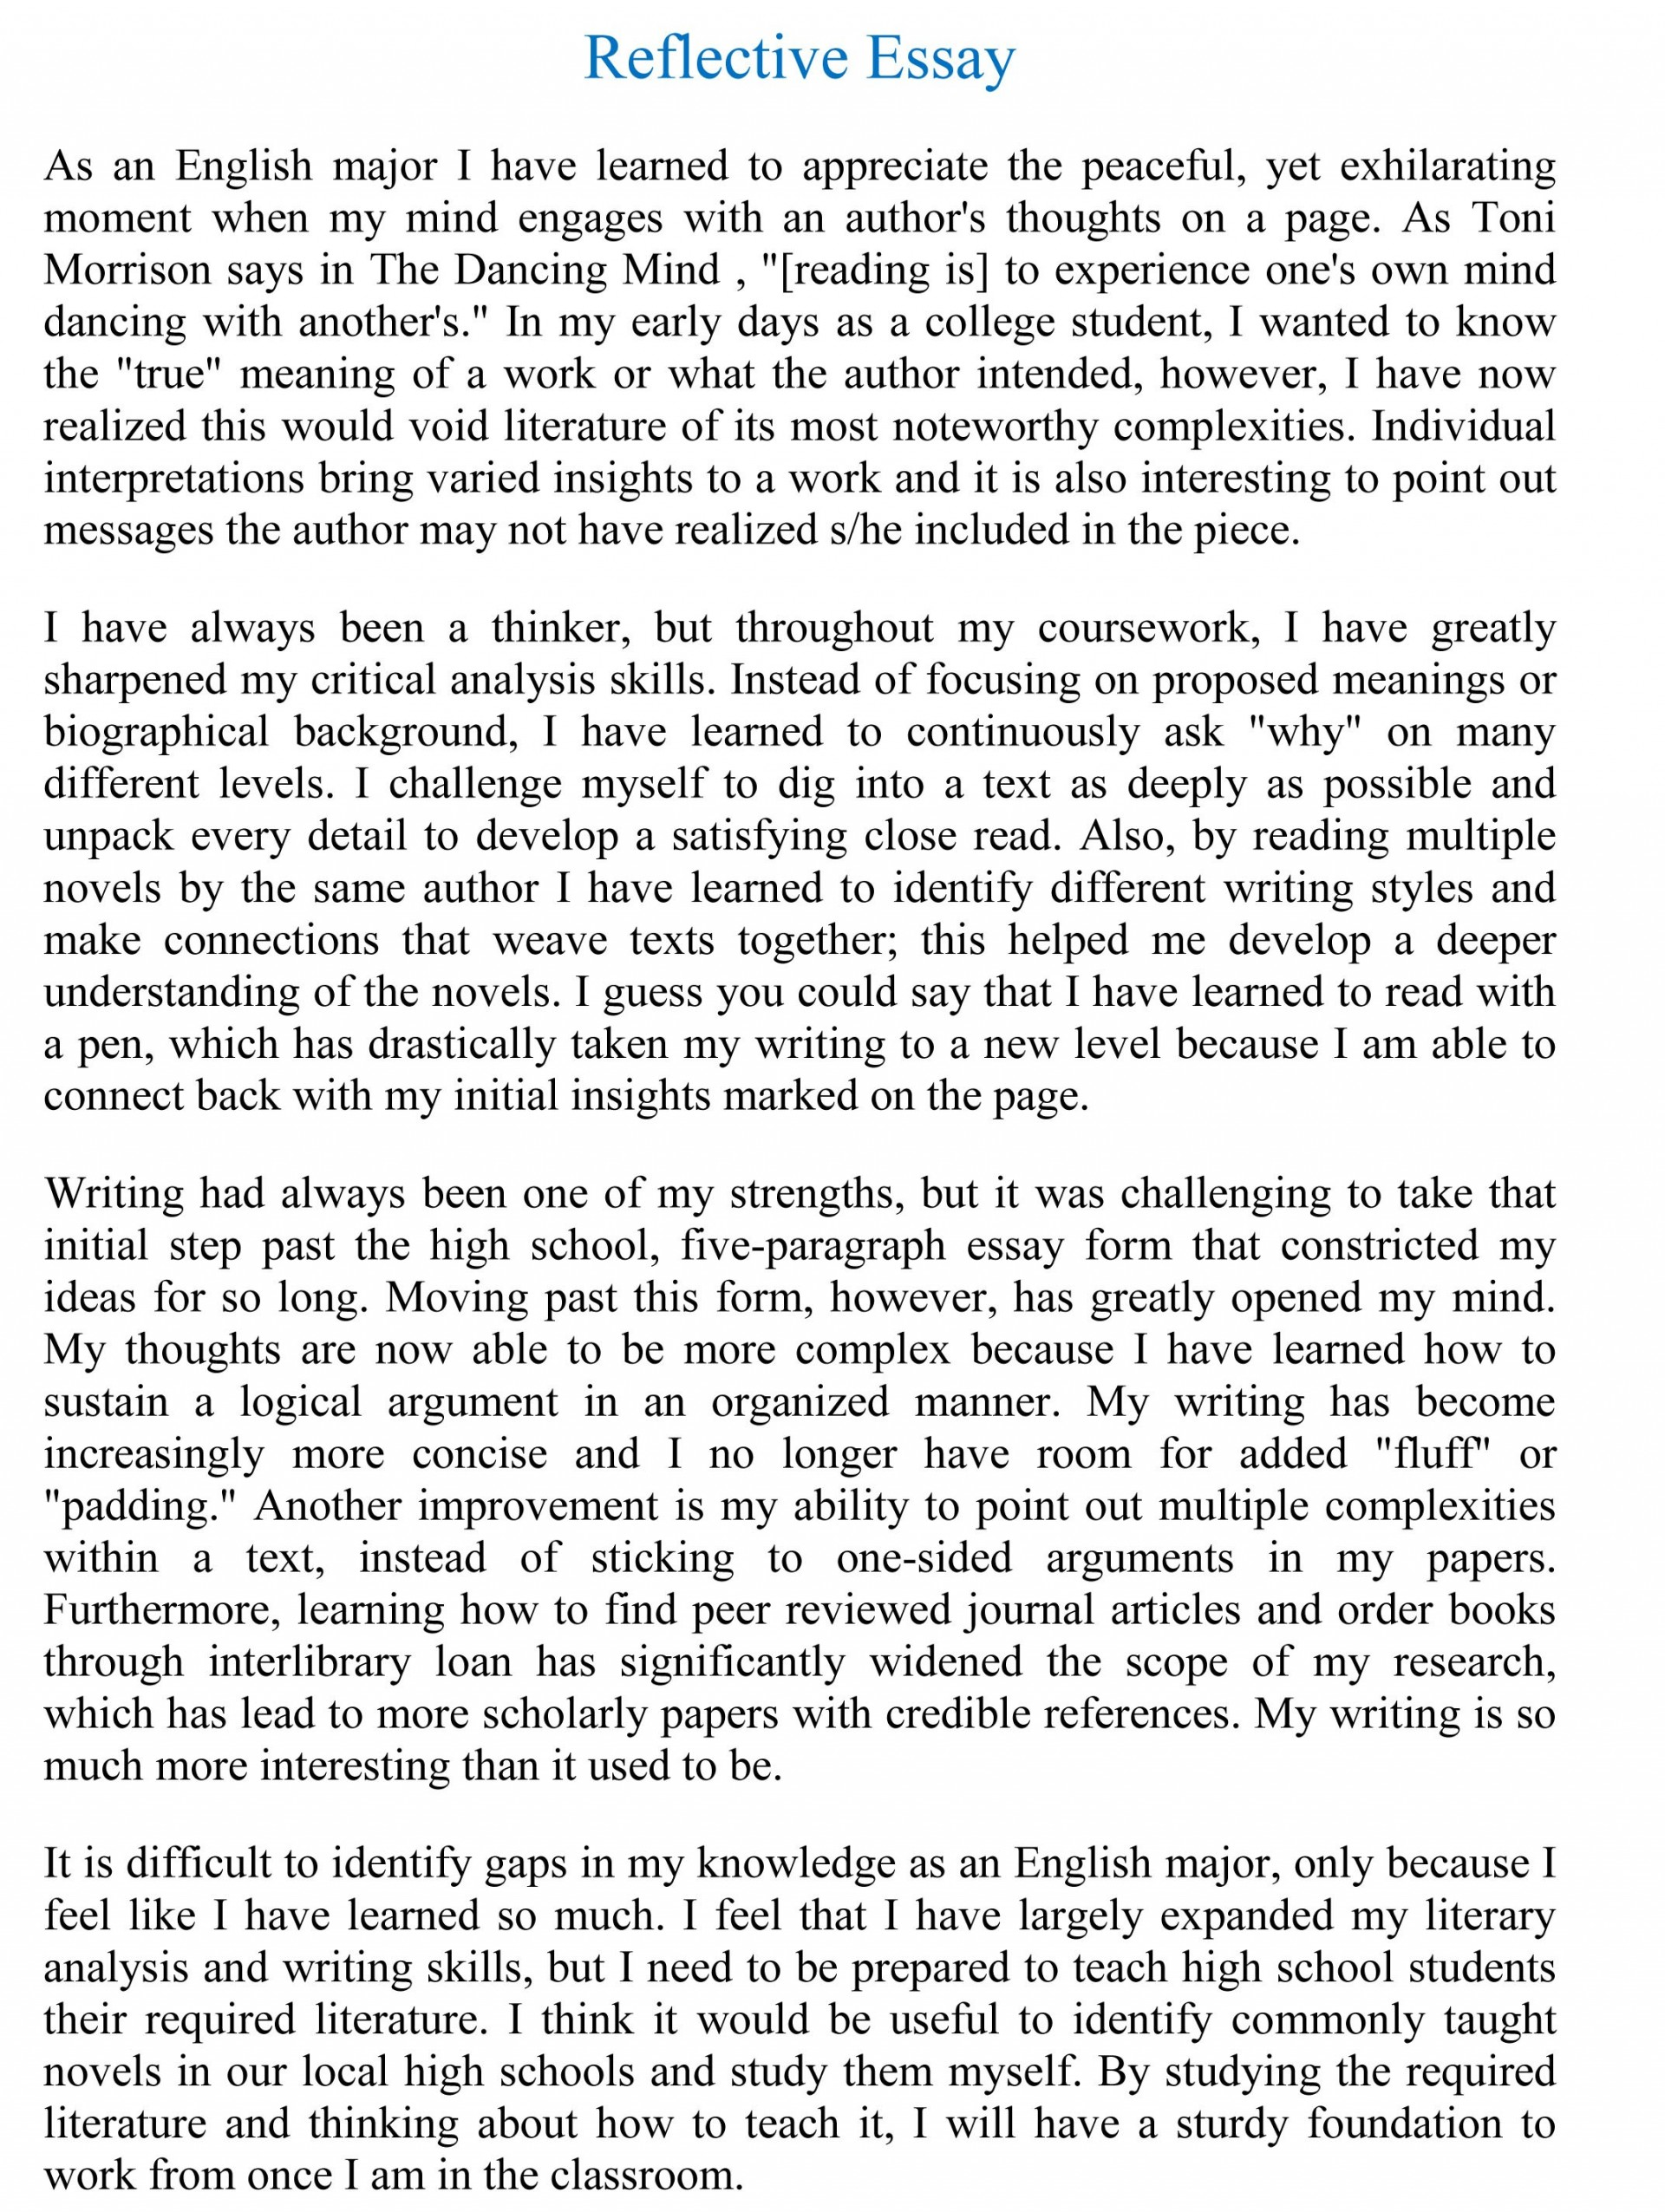 023 Research Paper Reflective Essay Death Penalty Awesome Introduction 1920